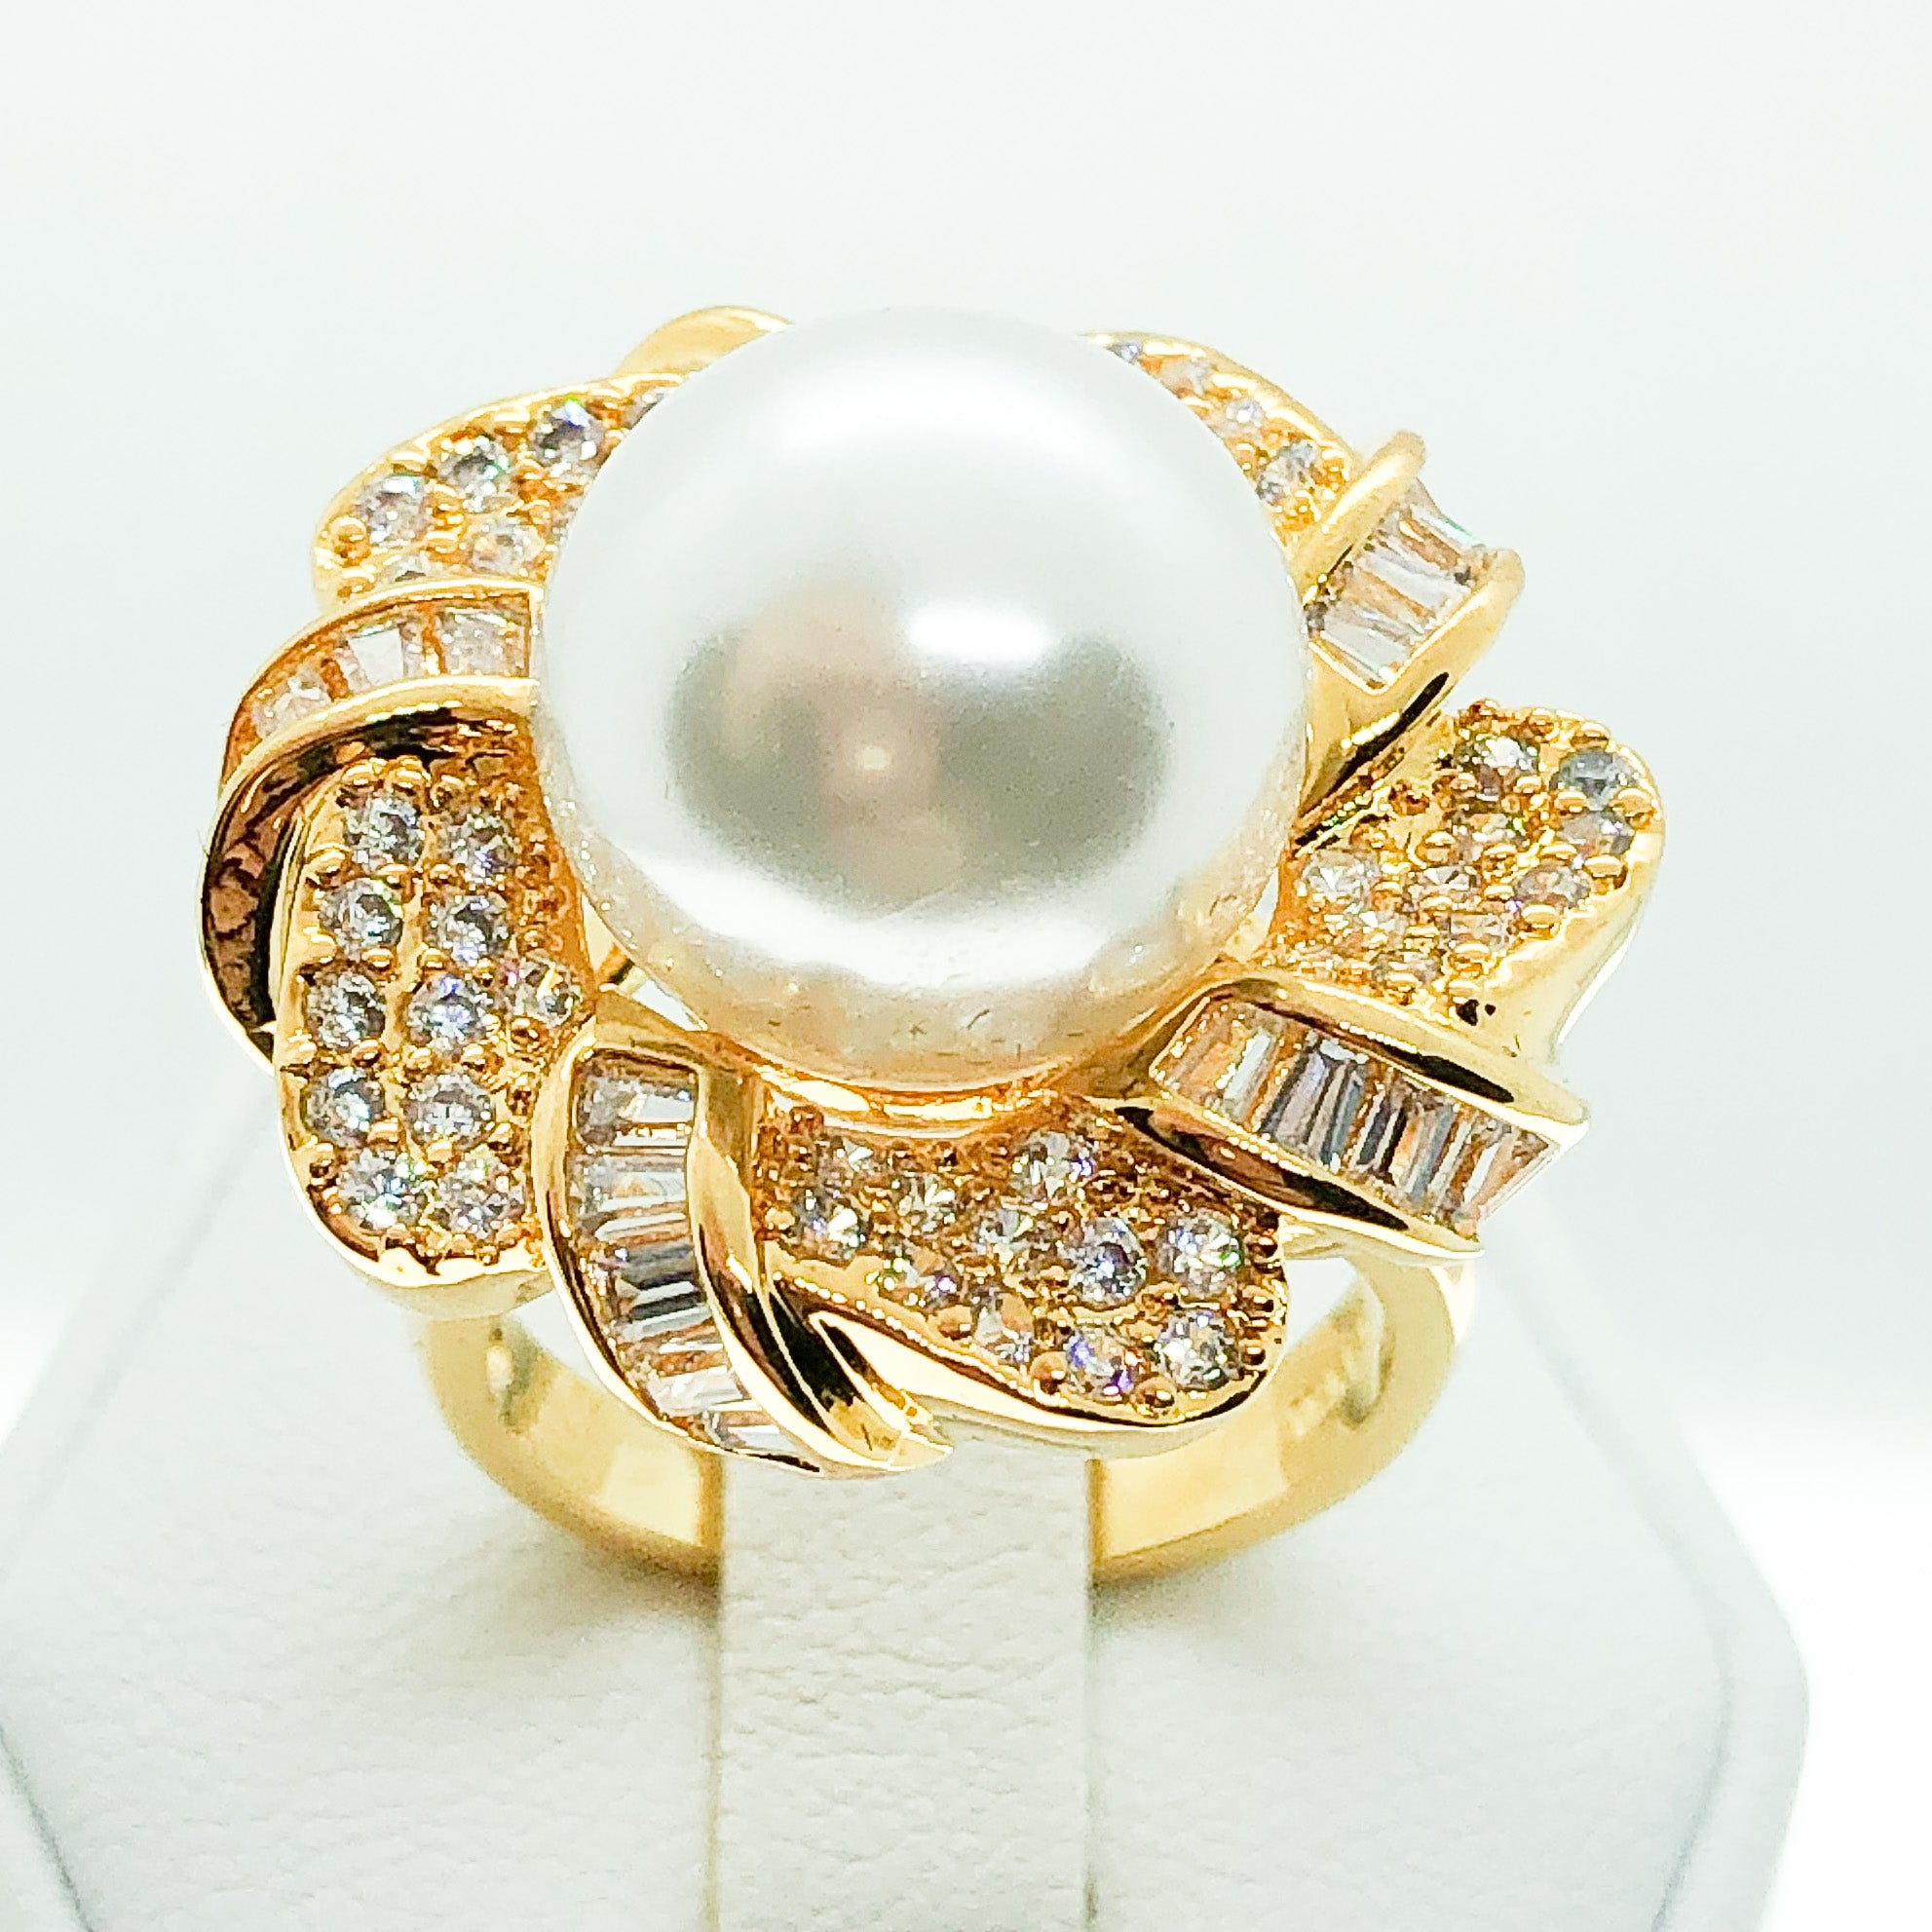 ID:R6189 Women 18K Yellow Gold GF Fashion Jewelry Expensive-looking Luxury 11mm White Pearl Ring With Clear Gemstones Accent